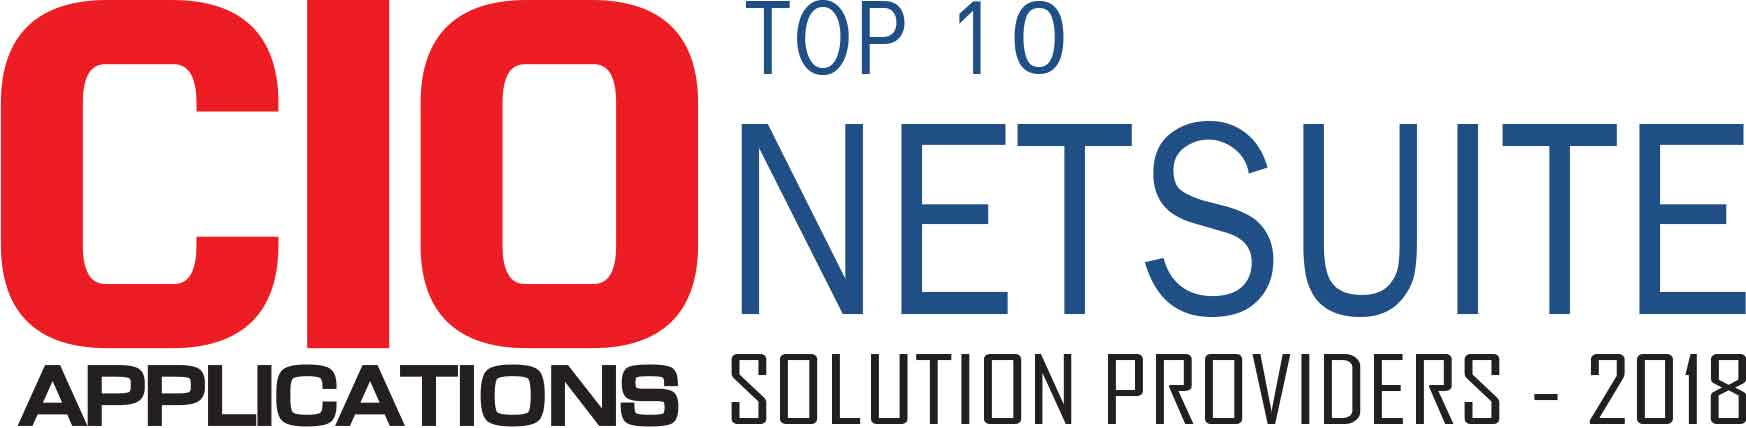 Top 10 Netsuite Solution Companies - 2018